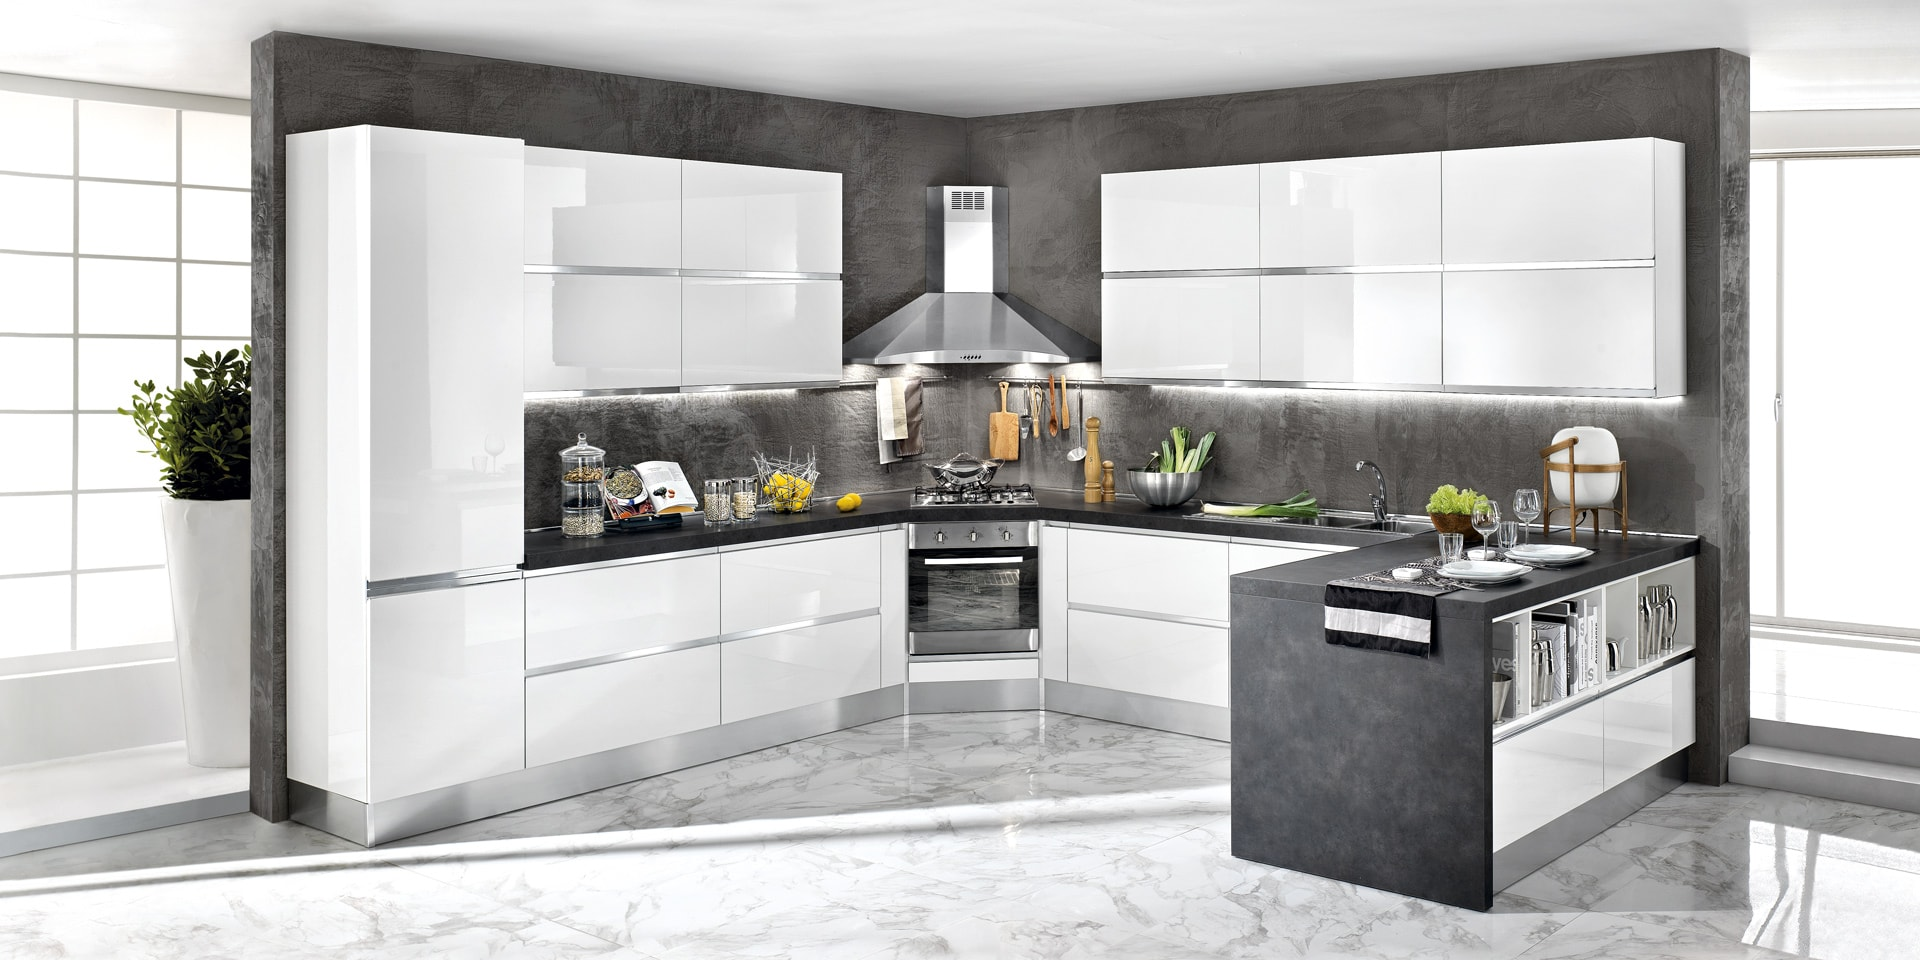 Cucine mondo convenienza for Cucine bloccate prezzi